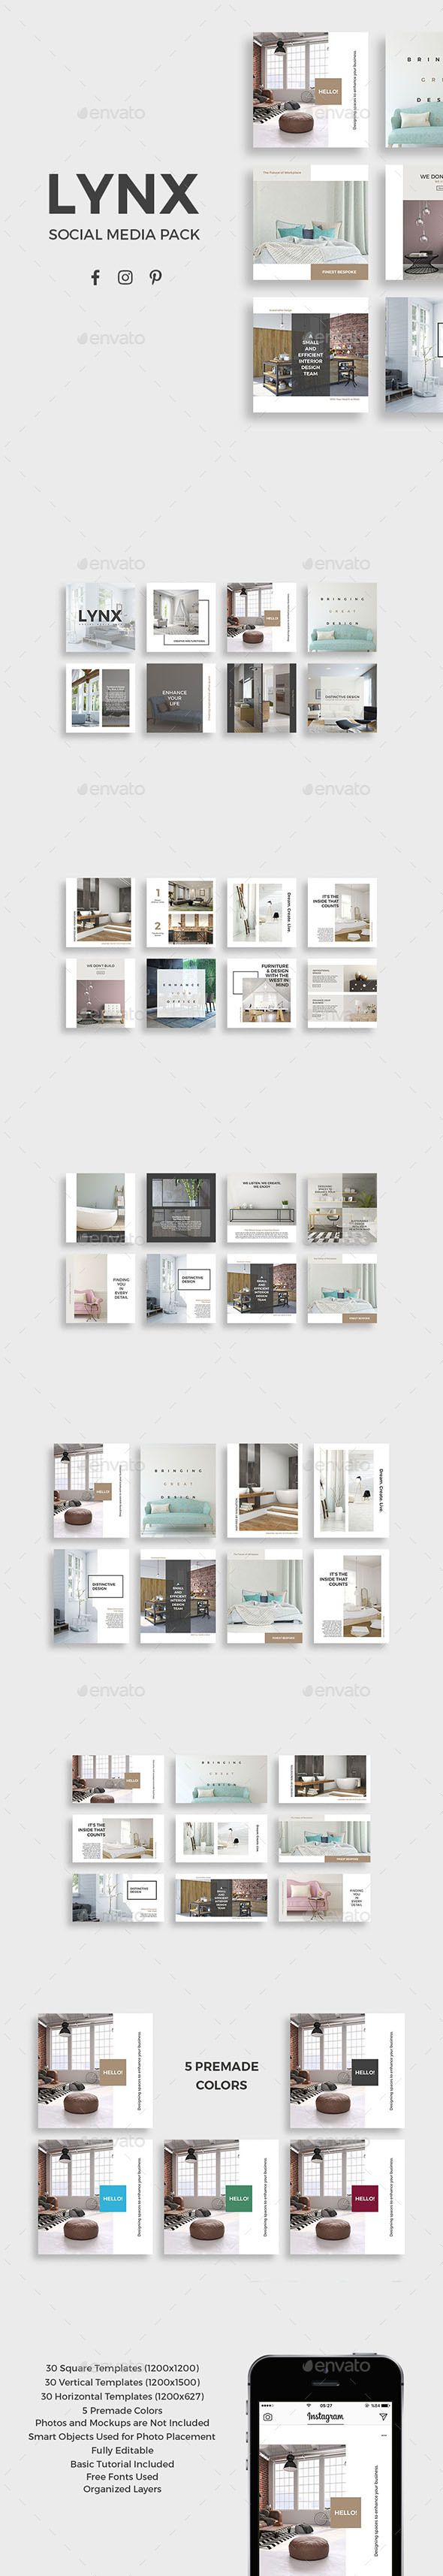 Lynx Social Media Pack — Photoshop PSD #home decor #manufacturer • Download ➝ https://graphicriver.net/item/lynx-social-media-pack/19616209?ref=pxcr